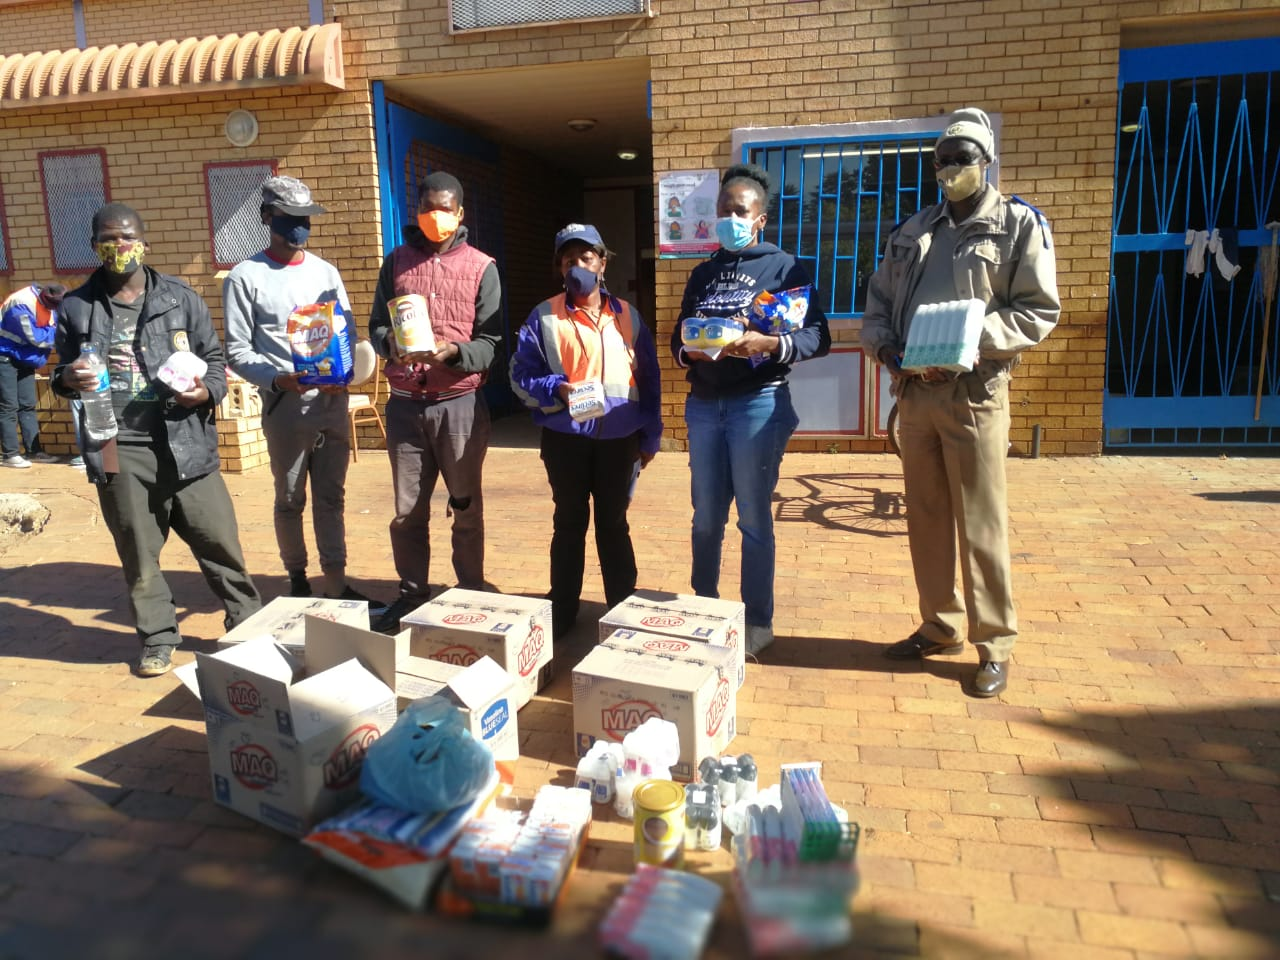 PHOTOGRAPHS OF FSE'S ASSISTANCE TO THE POORTJIE COMMUNITY DURING COVID-19 IN CO-OPERATION WITH GOLD FIELDS' SOUTH DEEP MINE